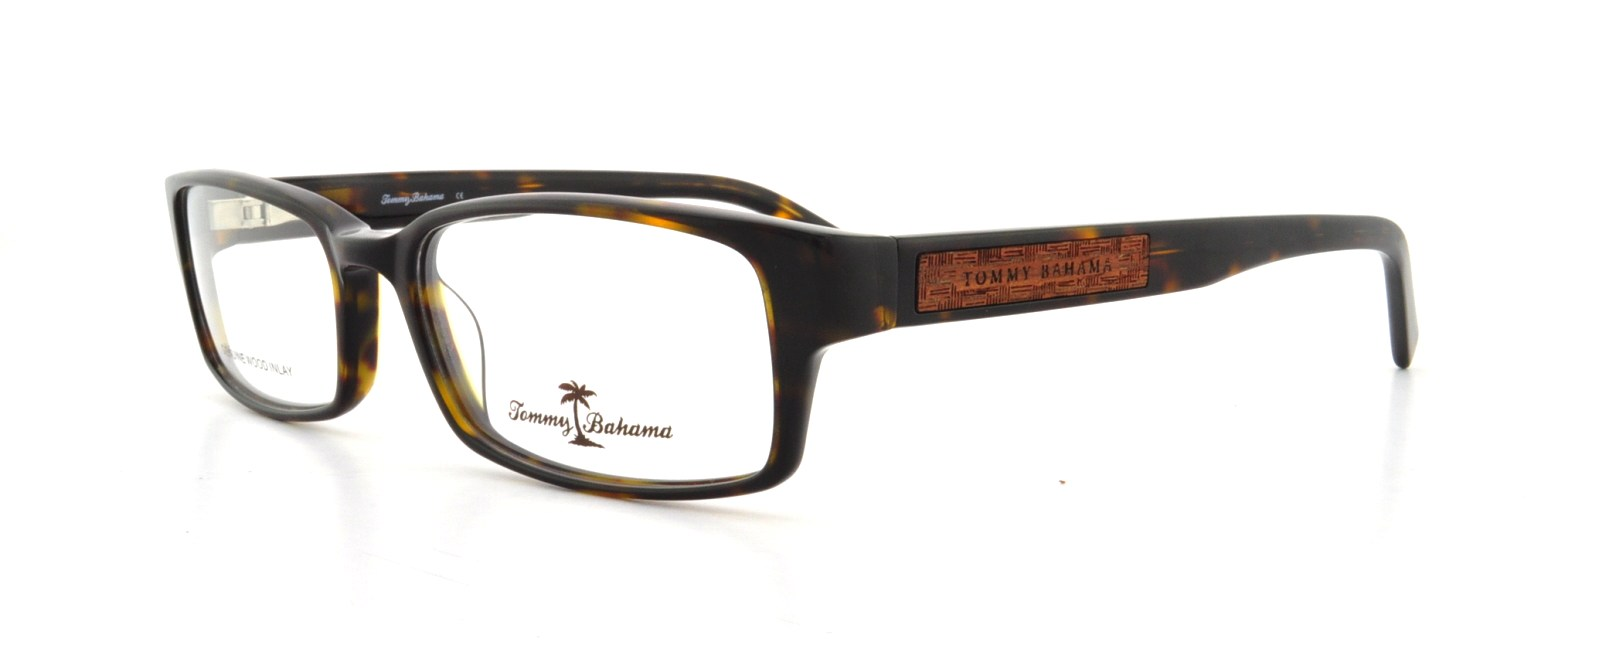 TOMMY BAHAMA Eyeglasses TB166 002 Brown Wood 53MM - Walmart.com